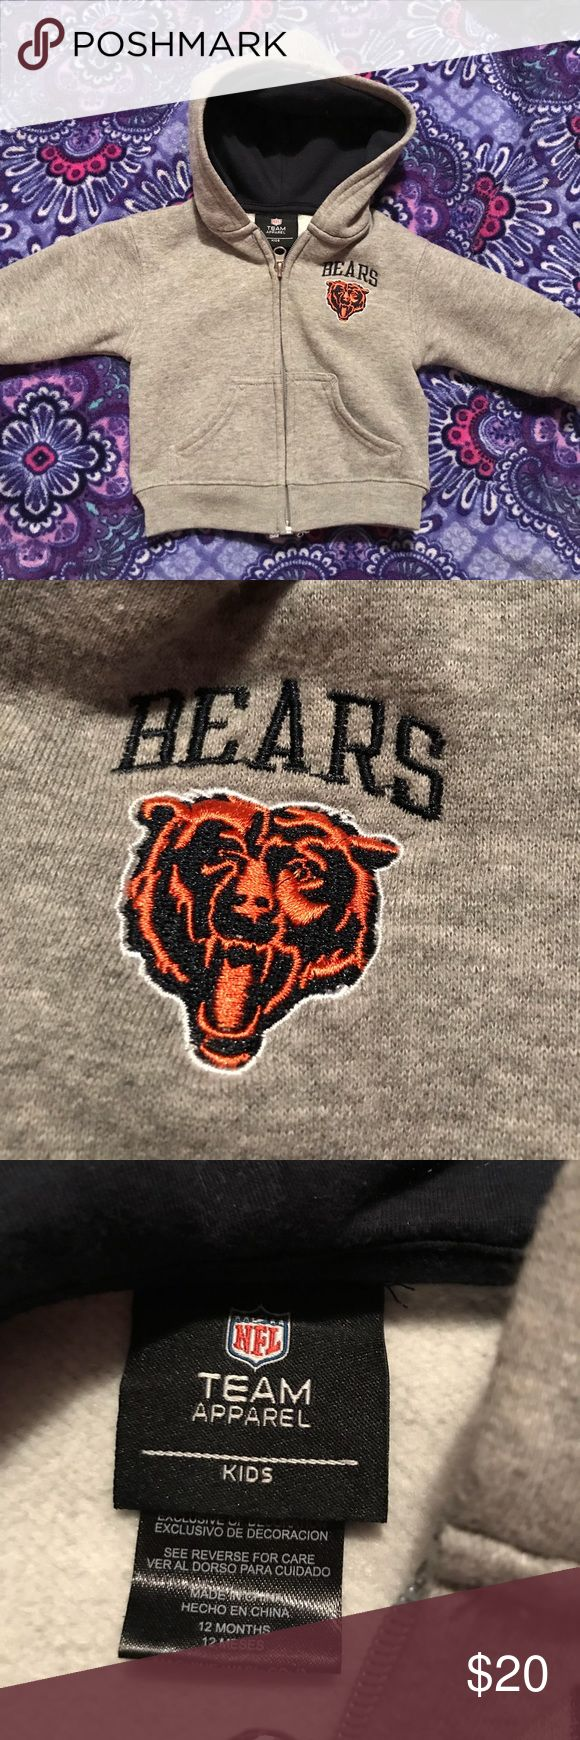 Chicago Bears zip up hoodie Chicago Bears zip up hoodie with two small front pockets.. working zippers. No stains. Gently used. Still soft inside. Bears logo on front. Grey zip up with Navy inside hood. Size 12 months. Football  Chicago sports. NFL team apparel Shirts & Tops Sweatshirts & Hoodies